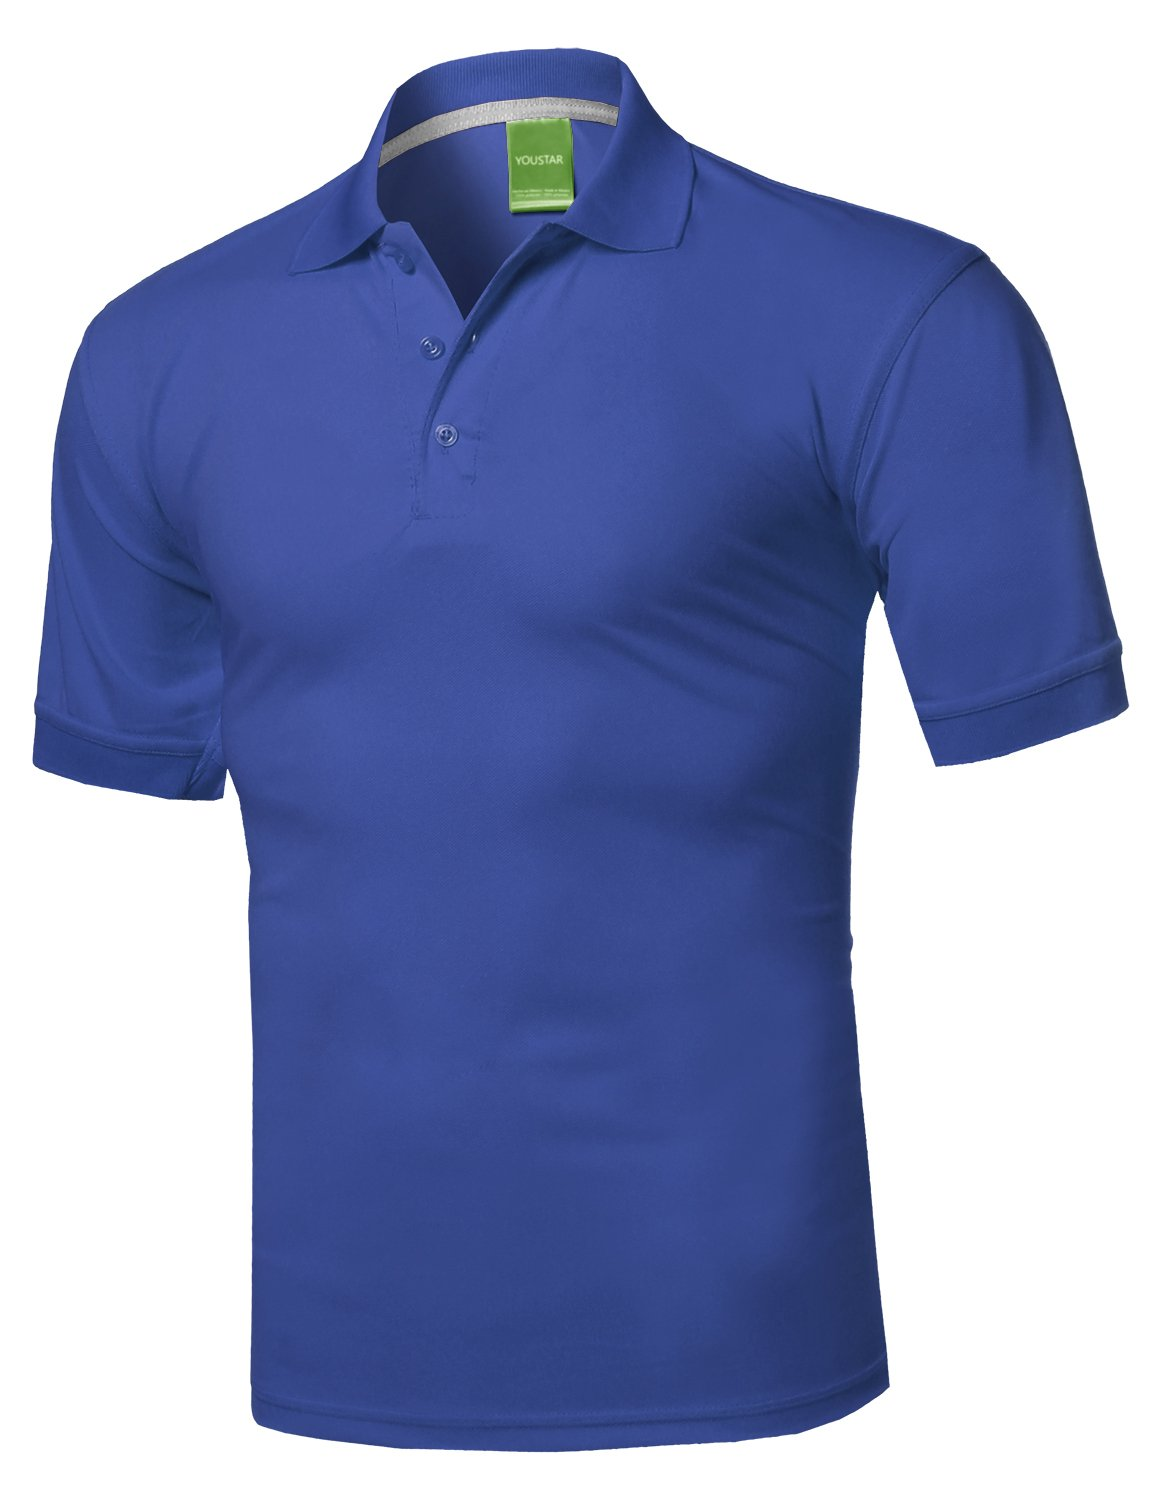 Youstar SHIRT メンズ B079Q6MR4V Small|Amtsts0133 Royal Blue Amtsts0133 Royal Blue Small